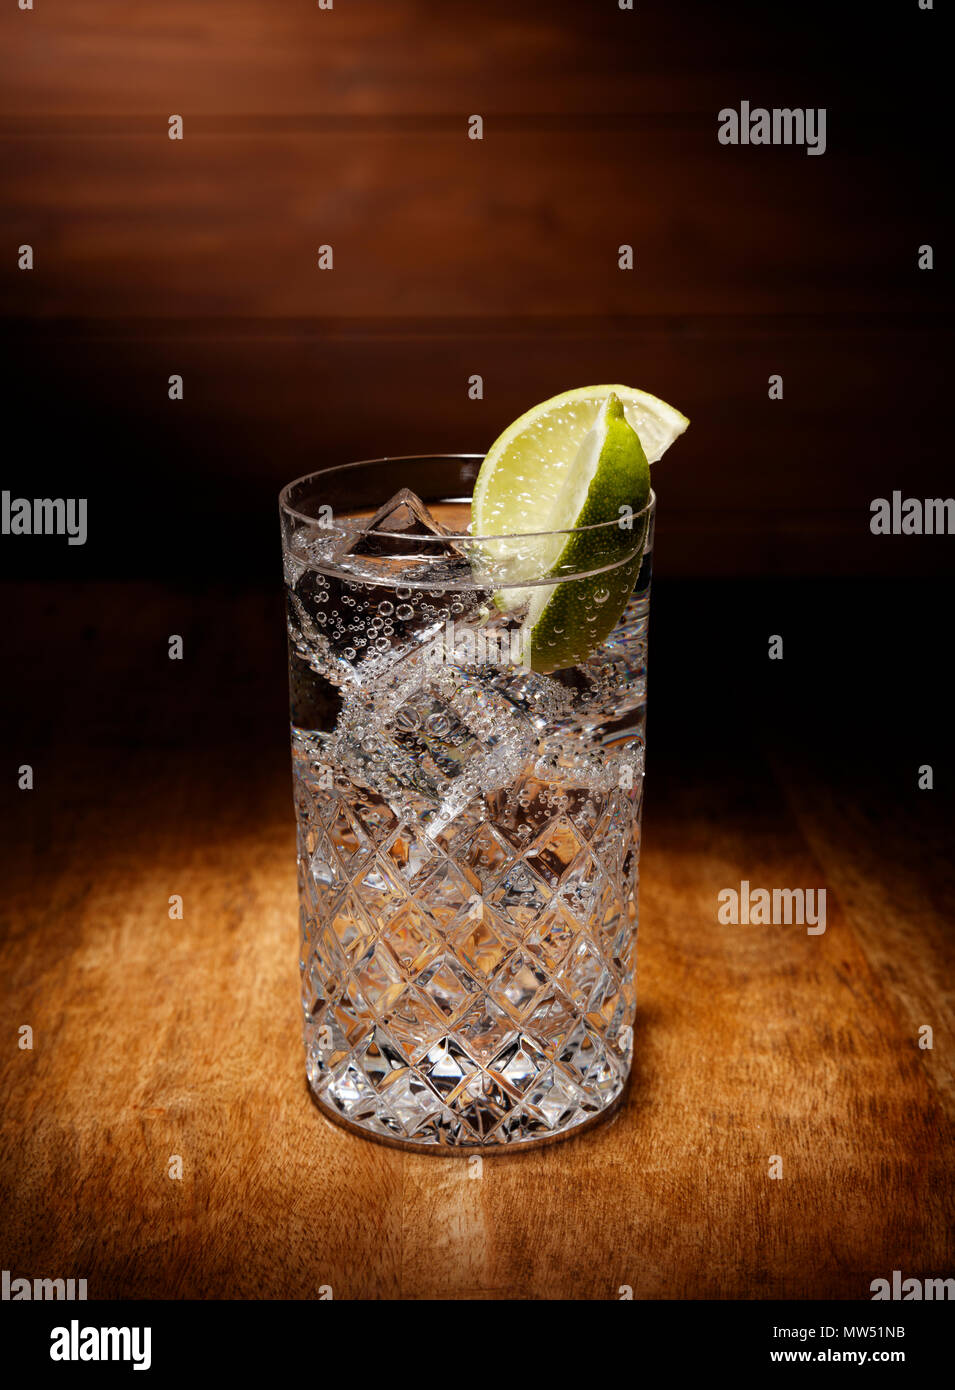 Spotlight on a single glasses full of the Gin and tonic cocktail, with a lime garnish, shot on a antique wooden table top. - Stock Image